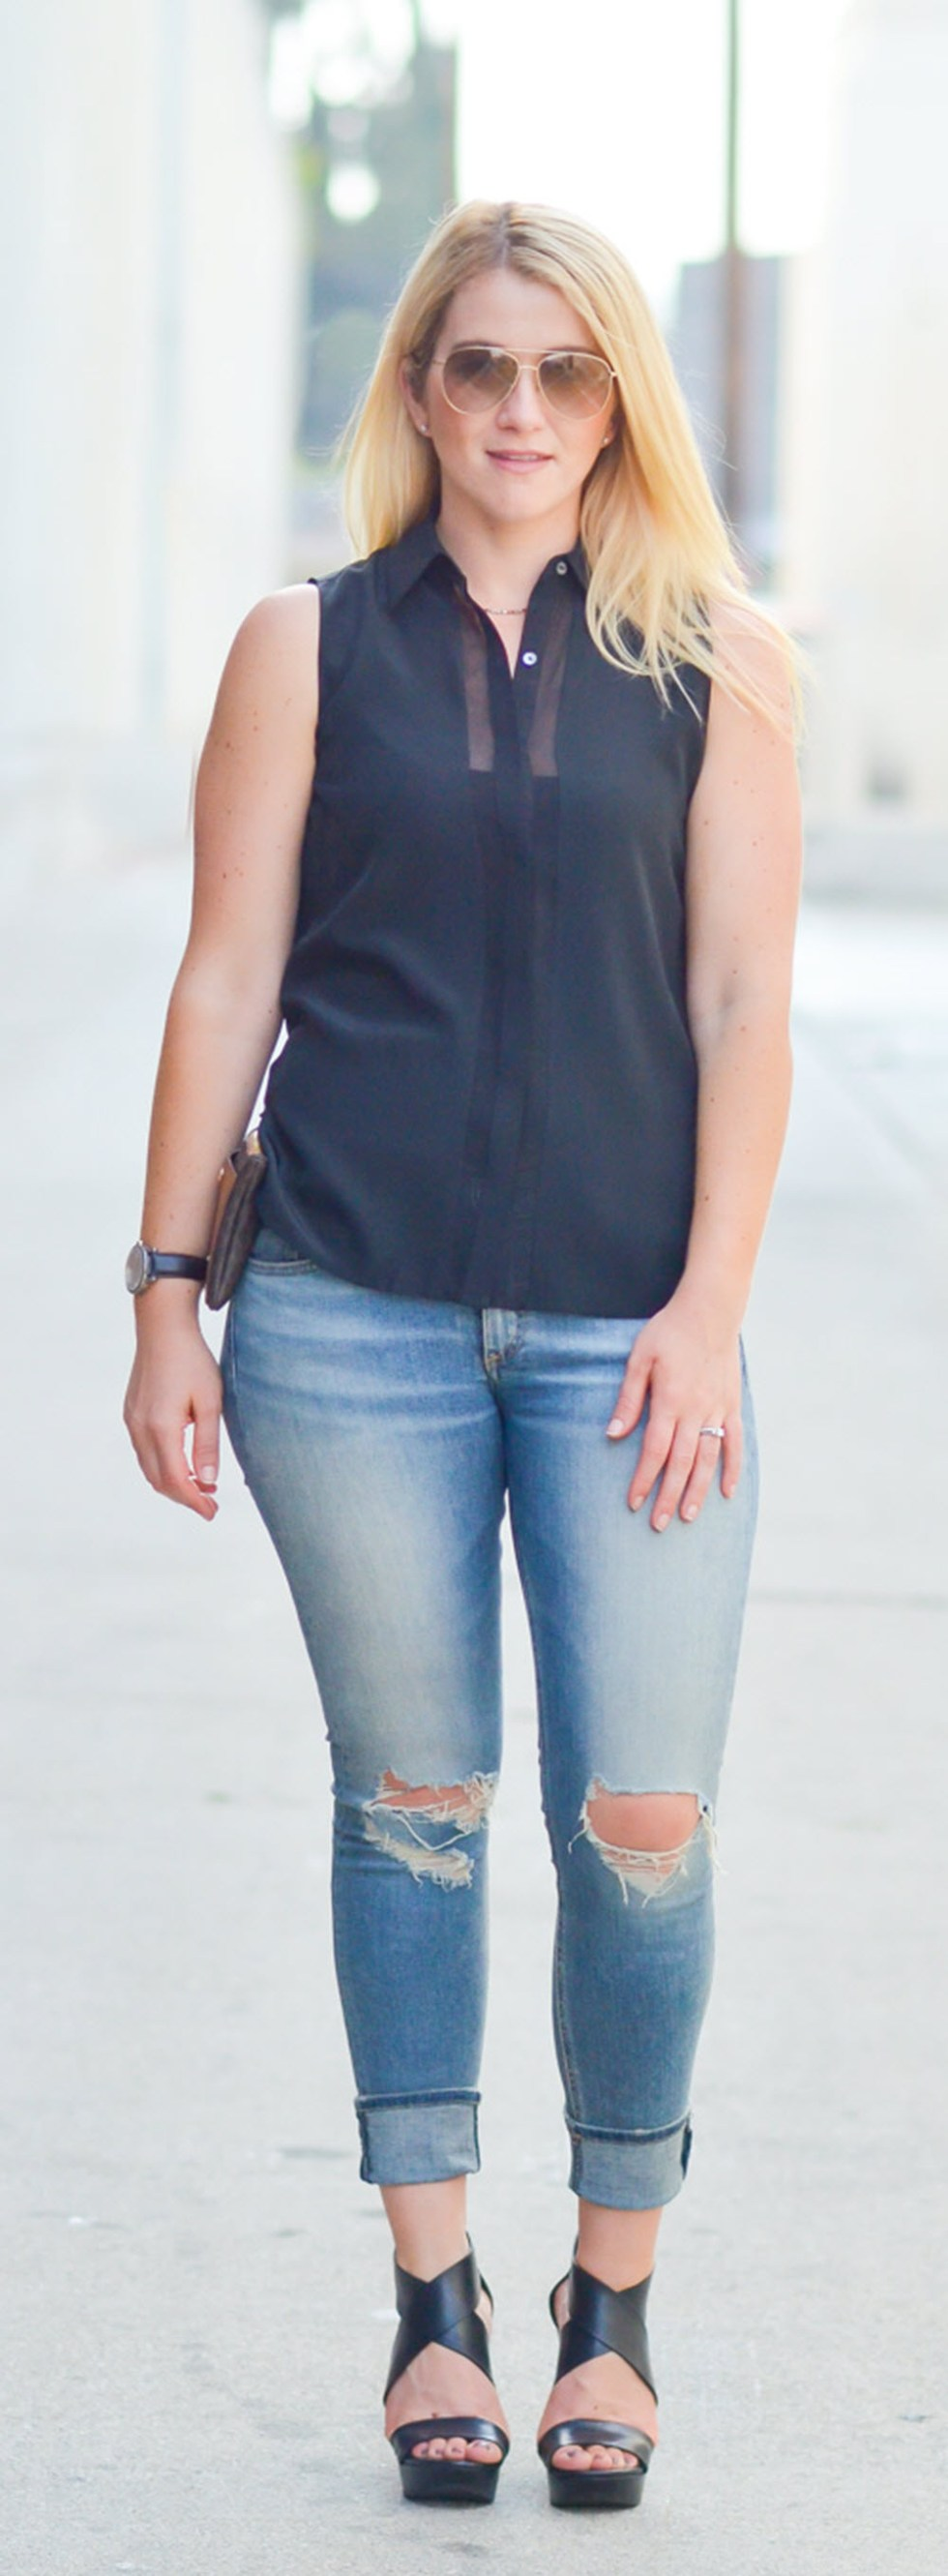 Black Sheer Top Outfit w. Wedges + Distressed Skinny Rag & Bone Jeans